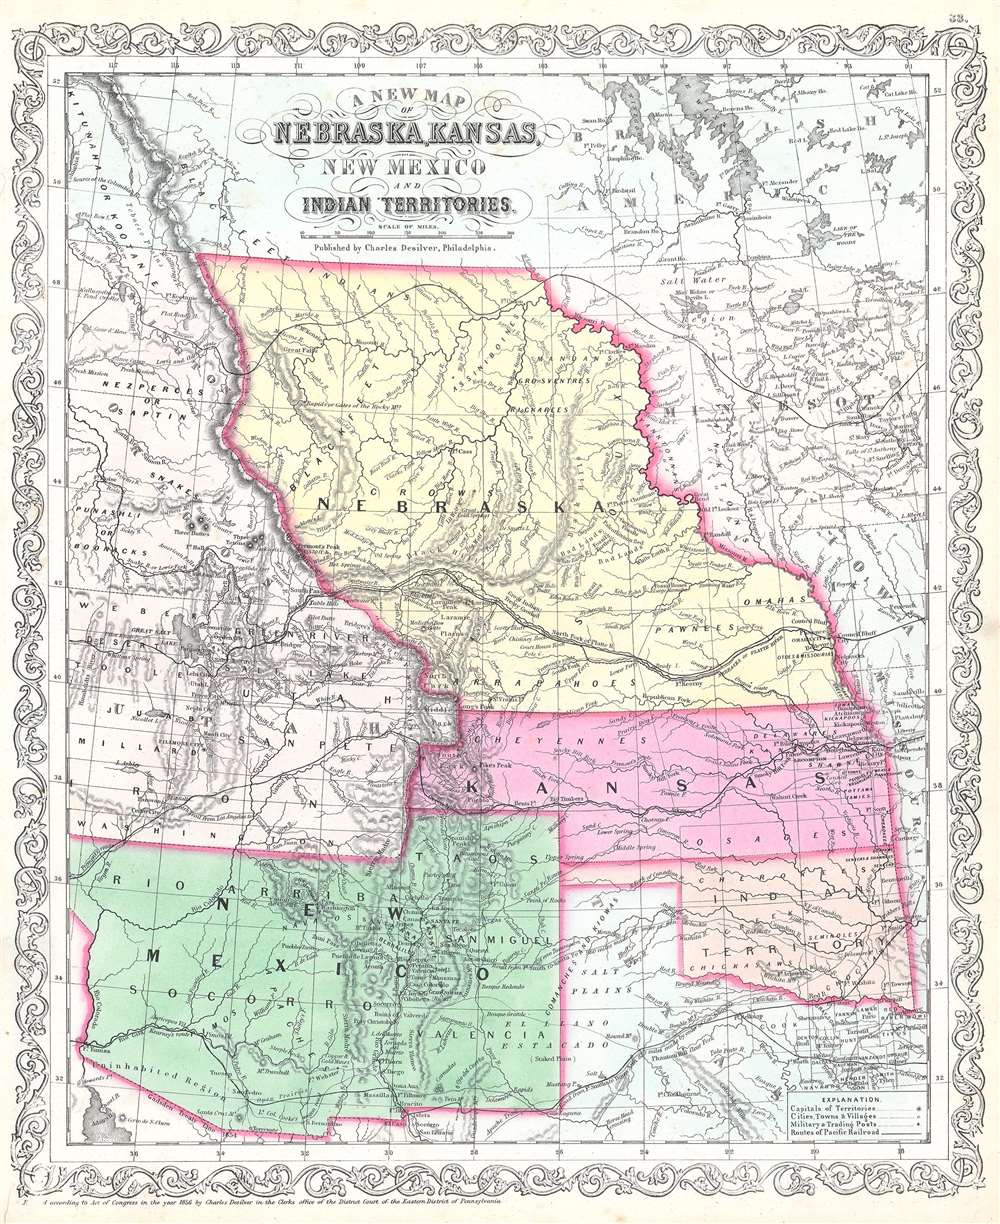 A New Map of Nebraska, Kansas, New Mexico and Indian Territories. - Main View